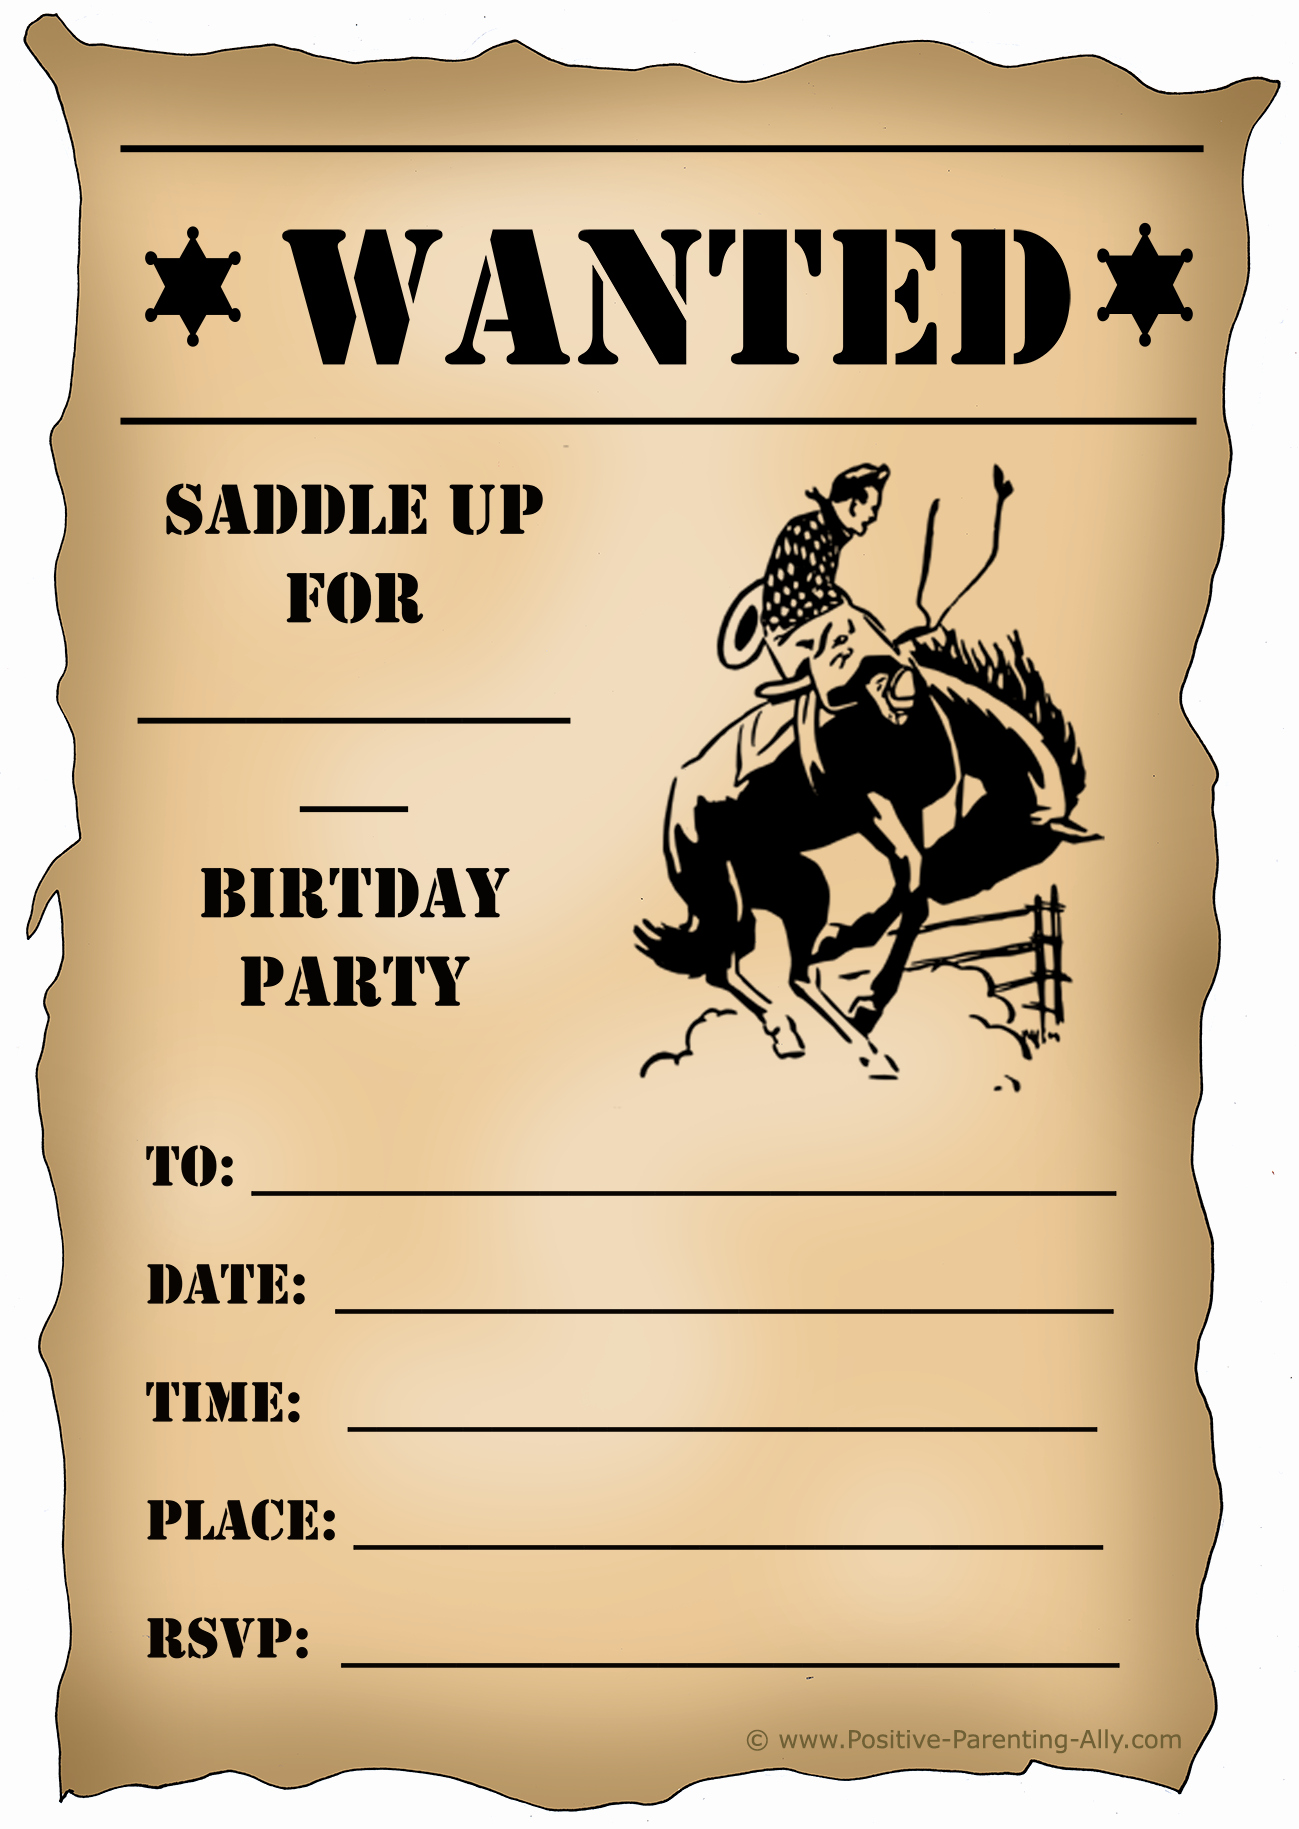 Western theme Party Invitation Template Unique Free Printable Birthday Party Invitations for Kids High